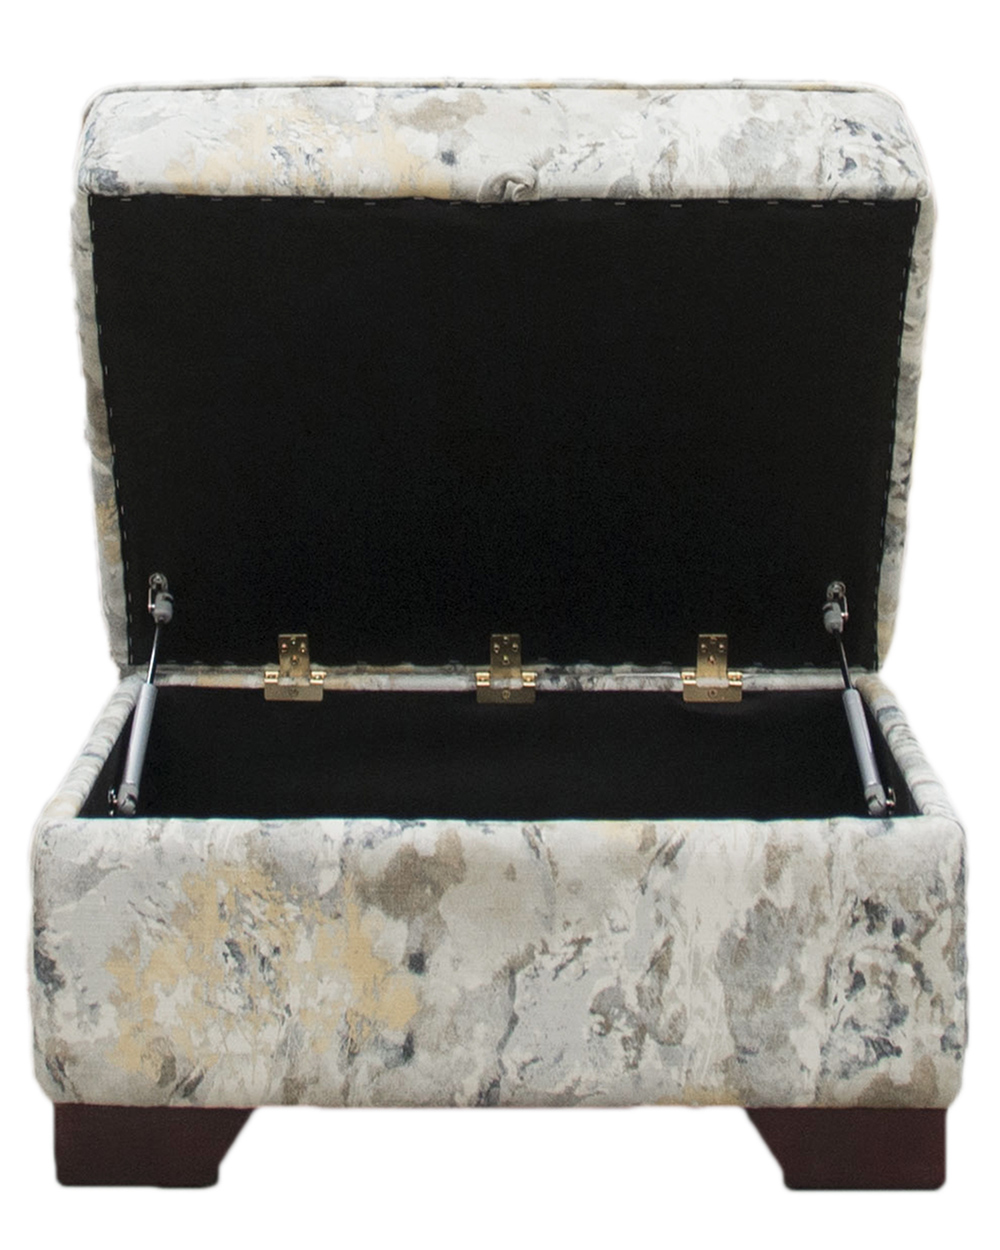 Imperial Stoage Footstool - Misc 18021